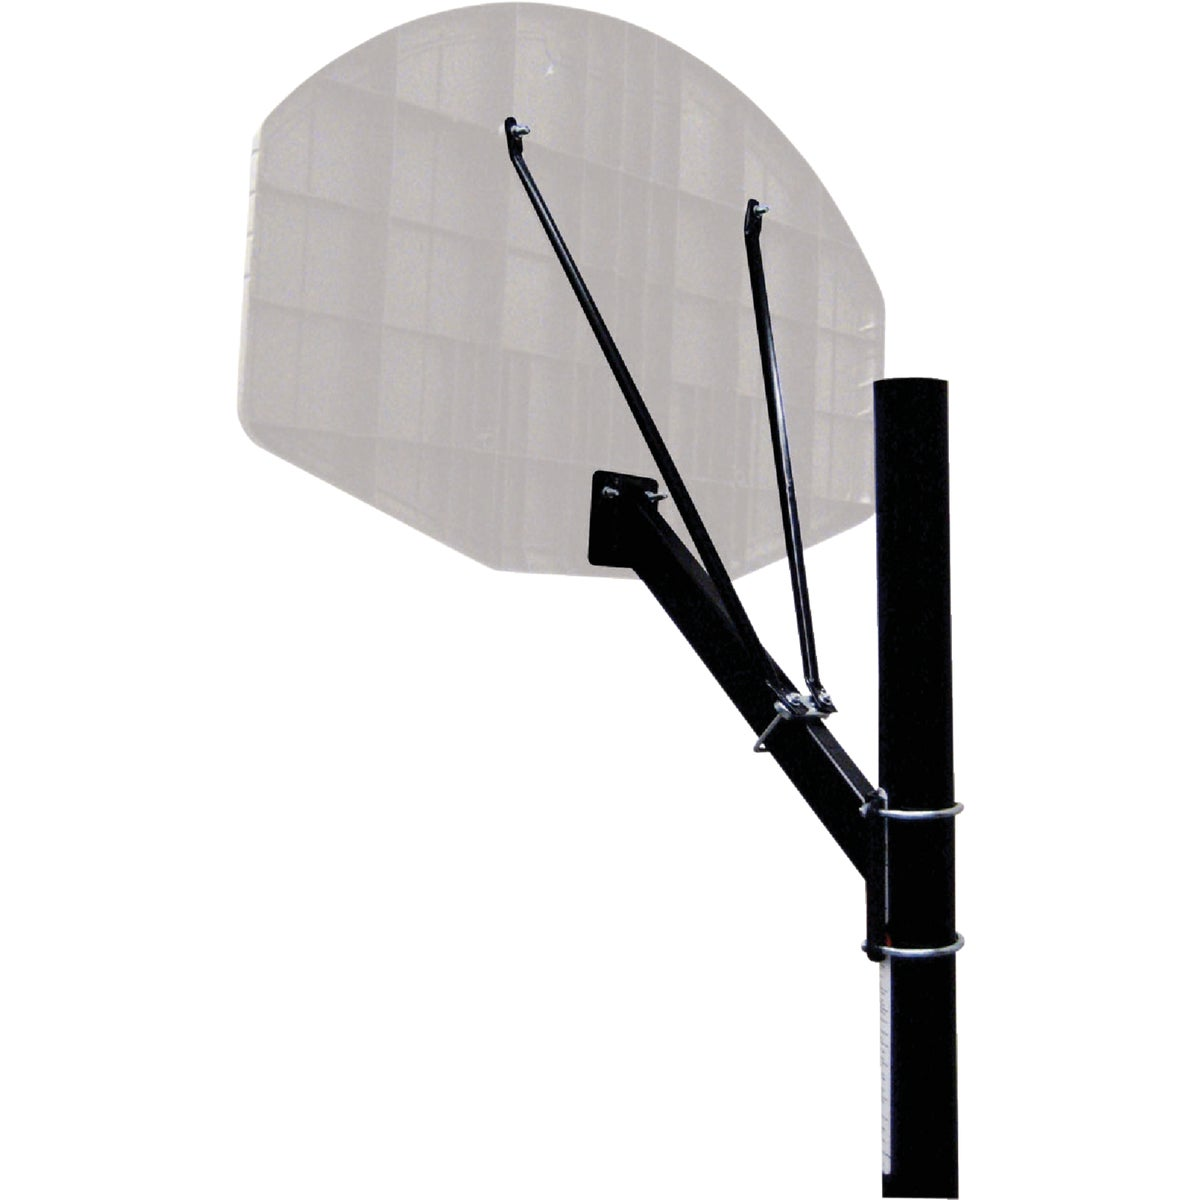 BASKETBALL POLE - 8844 by Huffy Sports